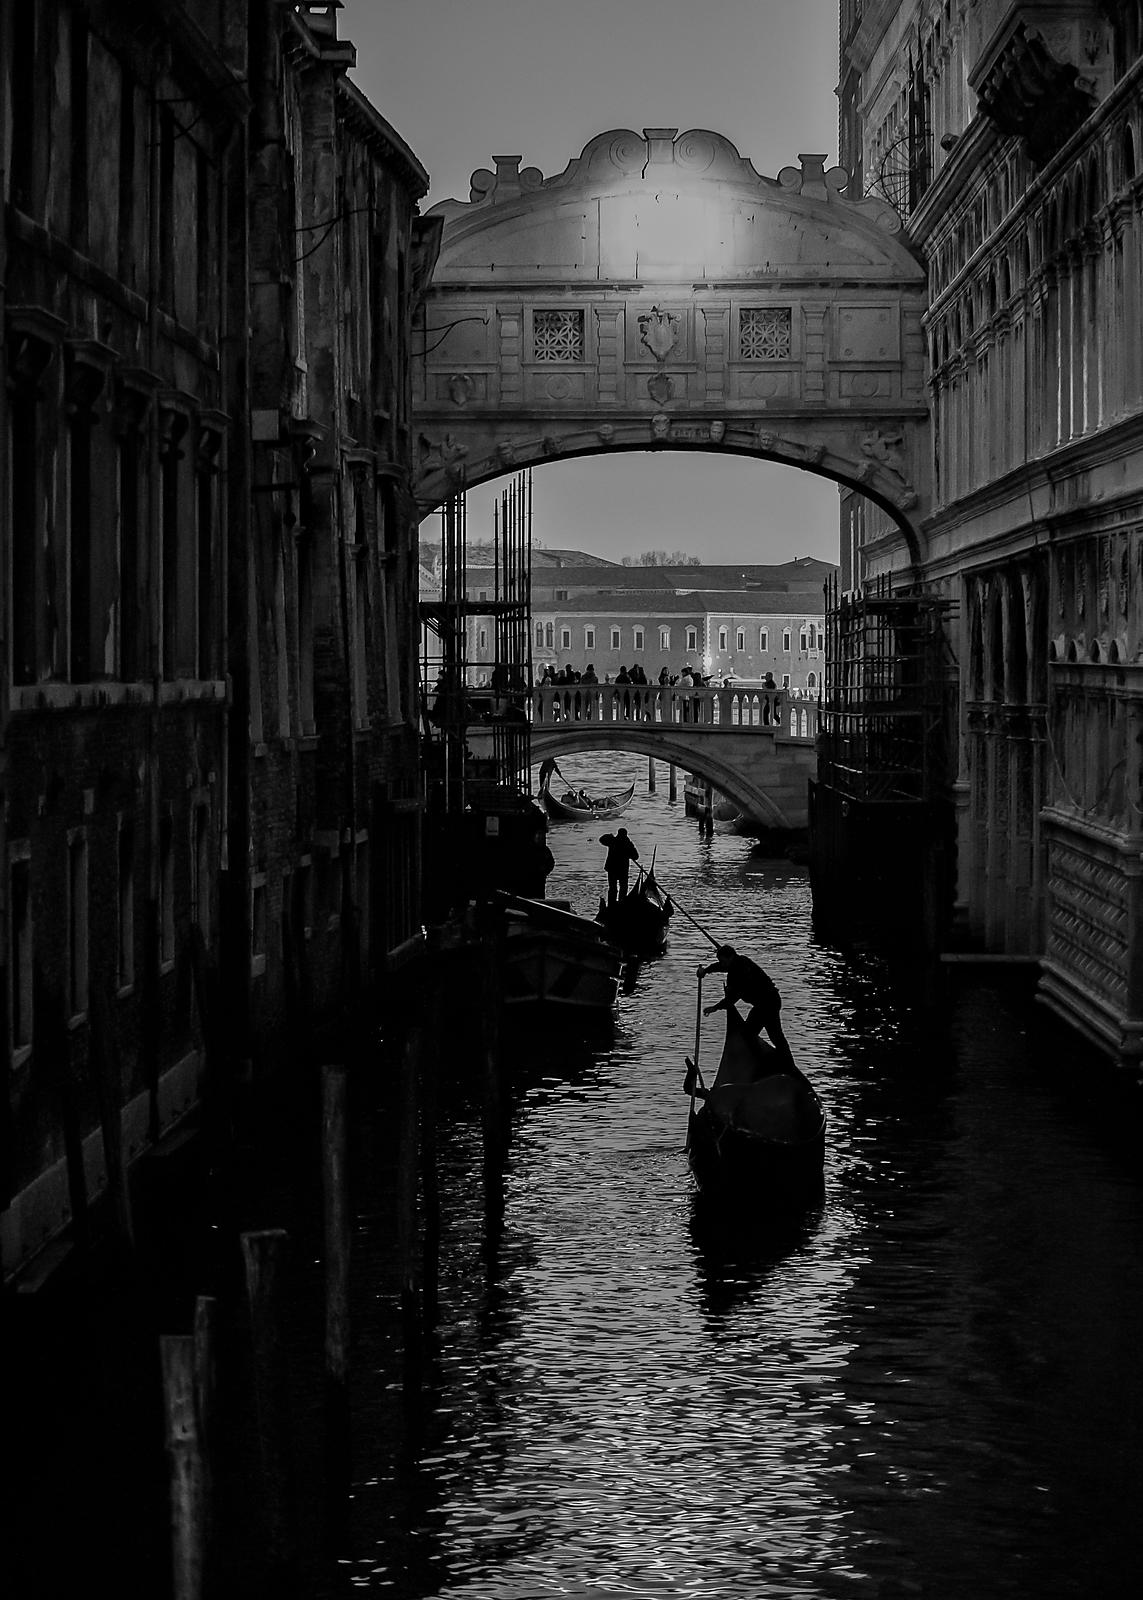 Silhouettes of Gondoliers under the Bridge of Sighs, Venice